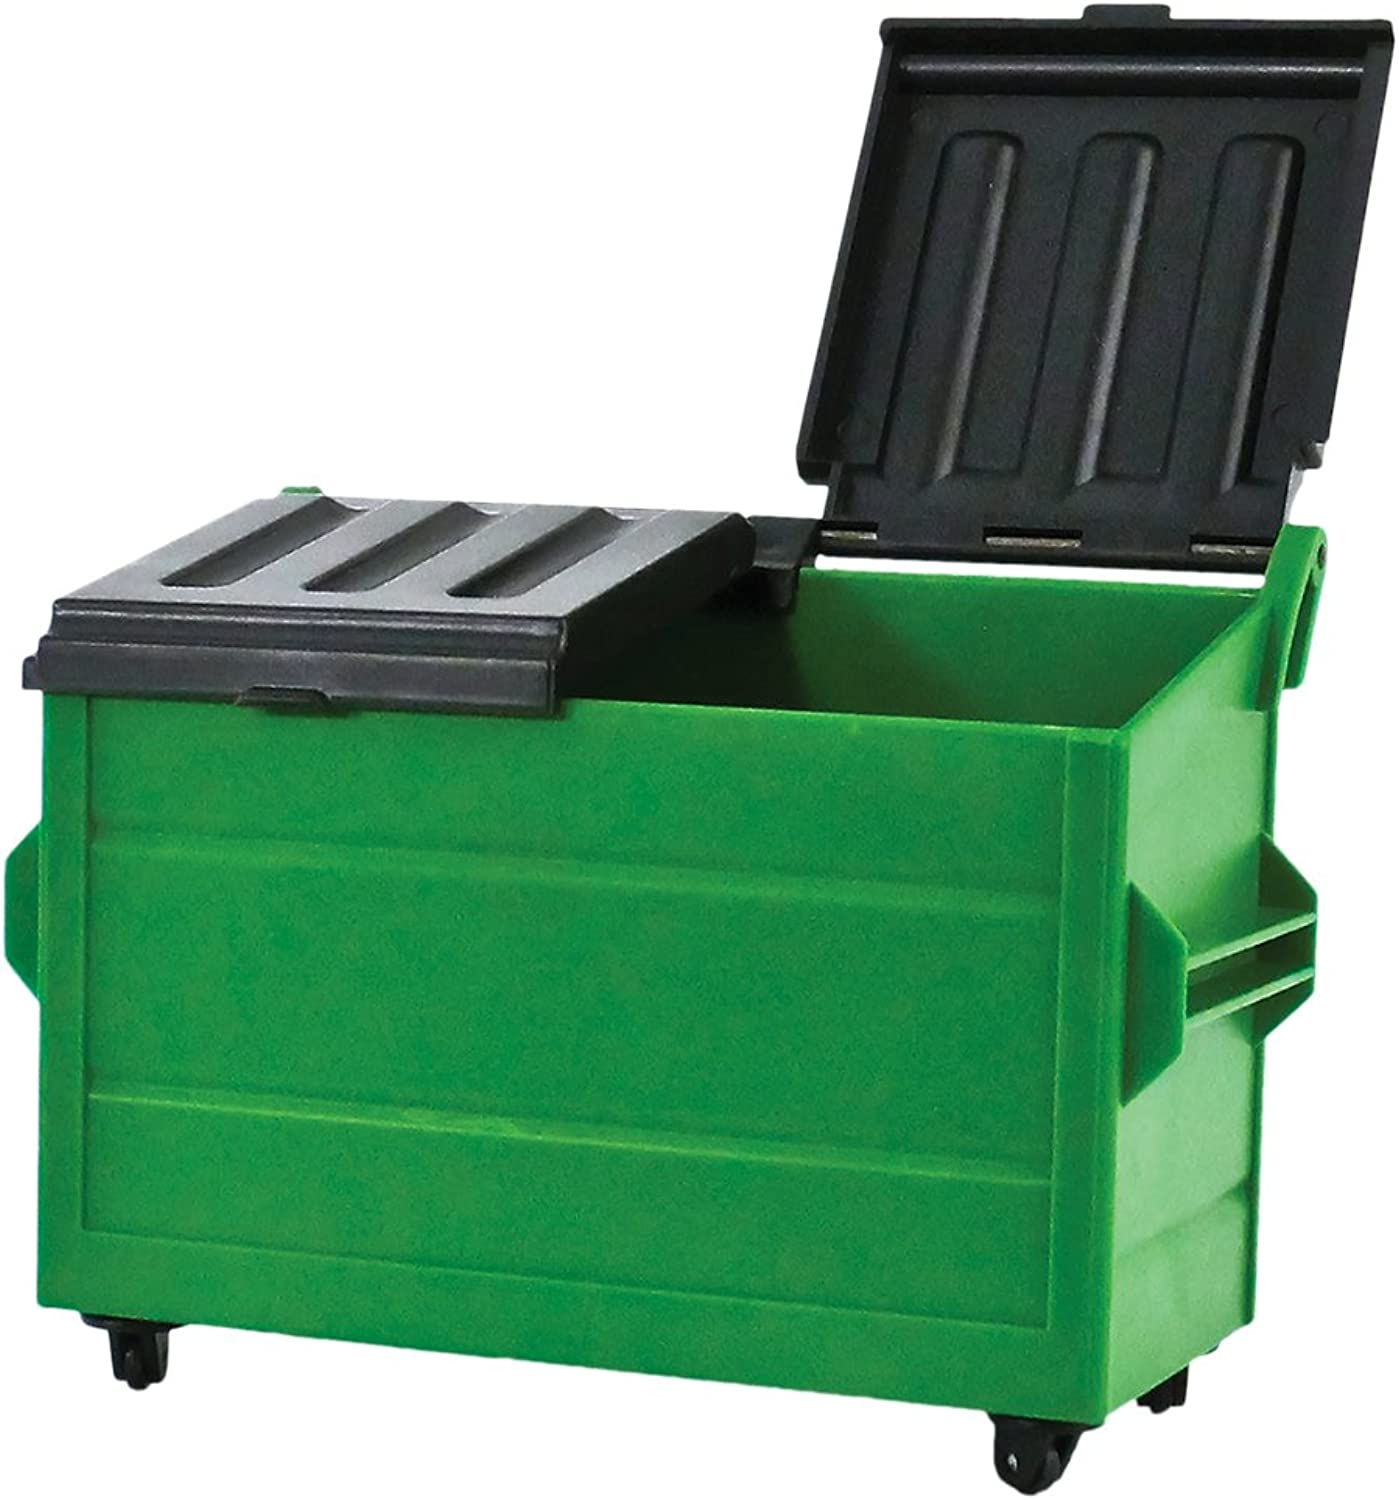 Figures Toy Company Green Dumpster for WWE Wrestling Action Figures